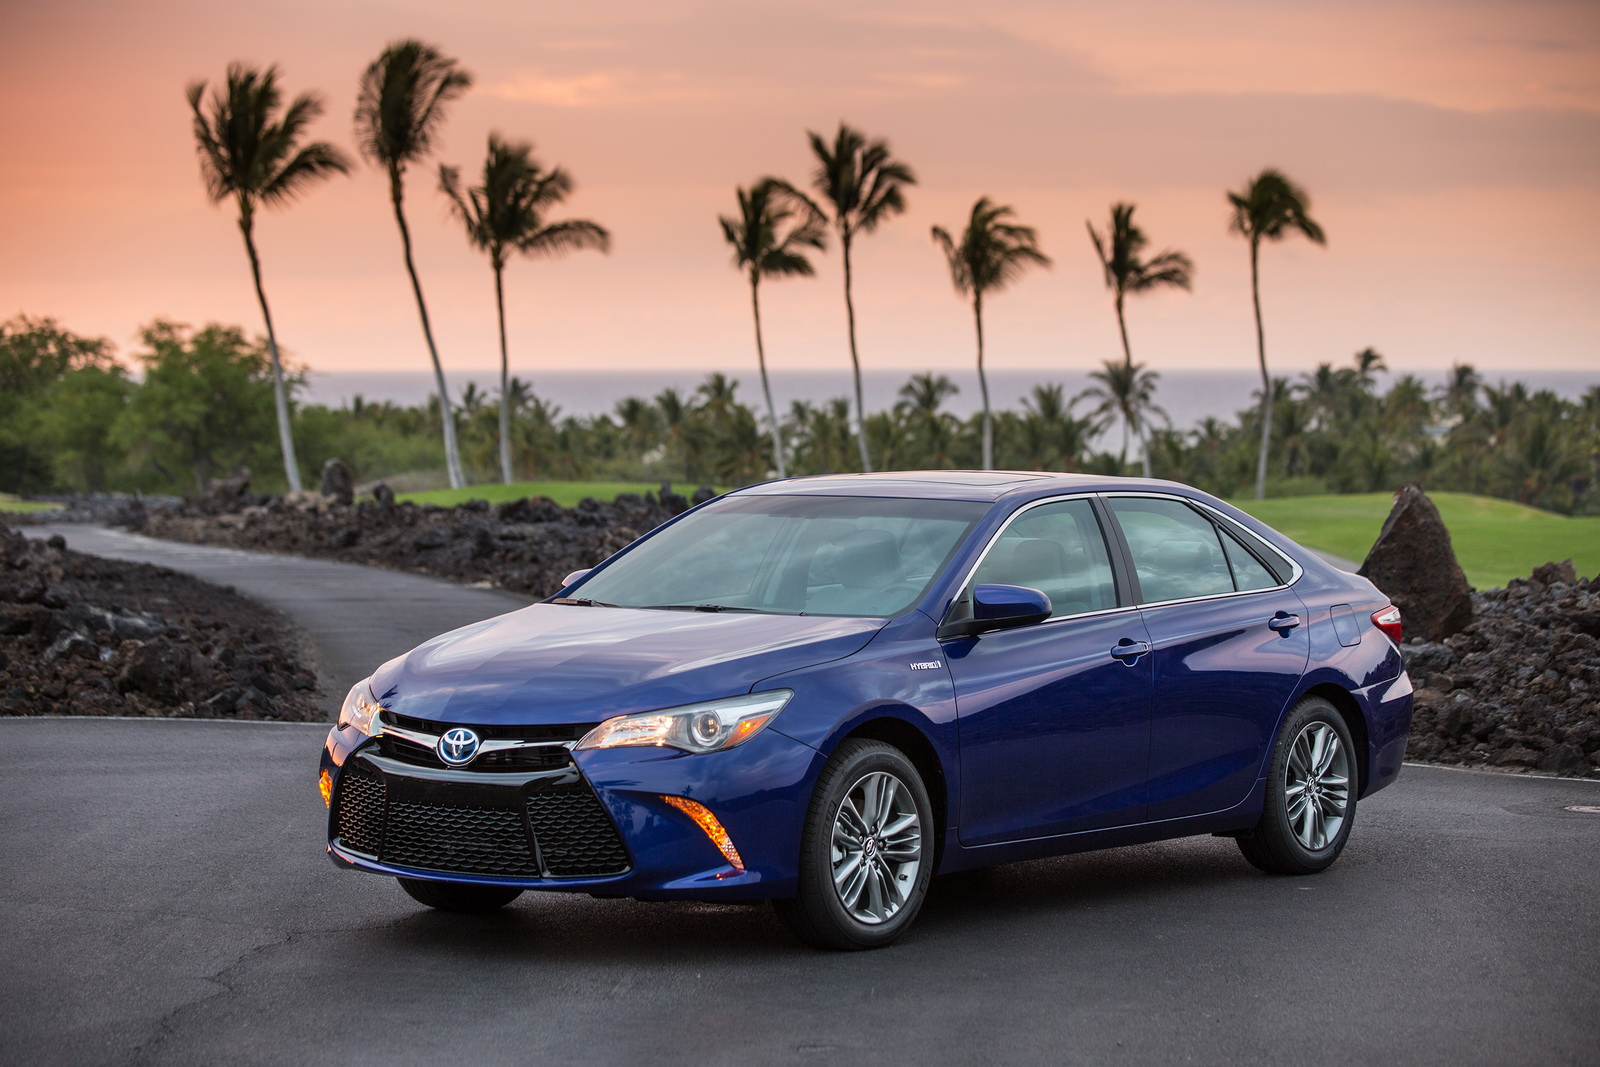 Toyota Camry LE – new car under $25,000